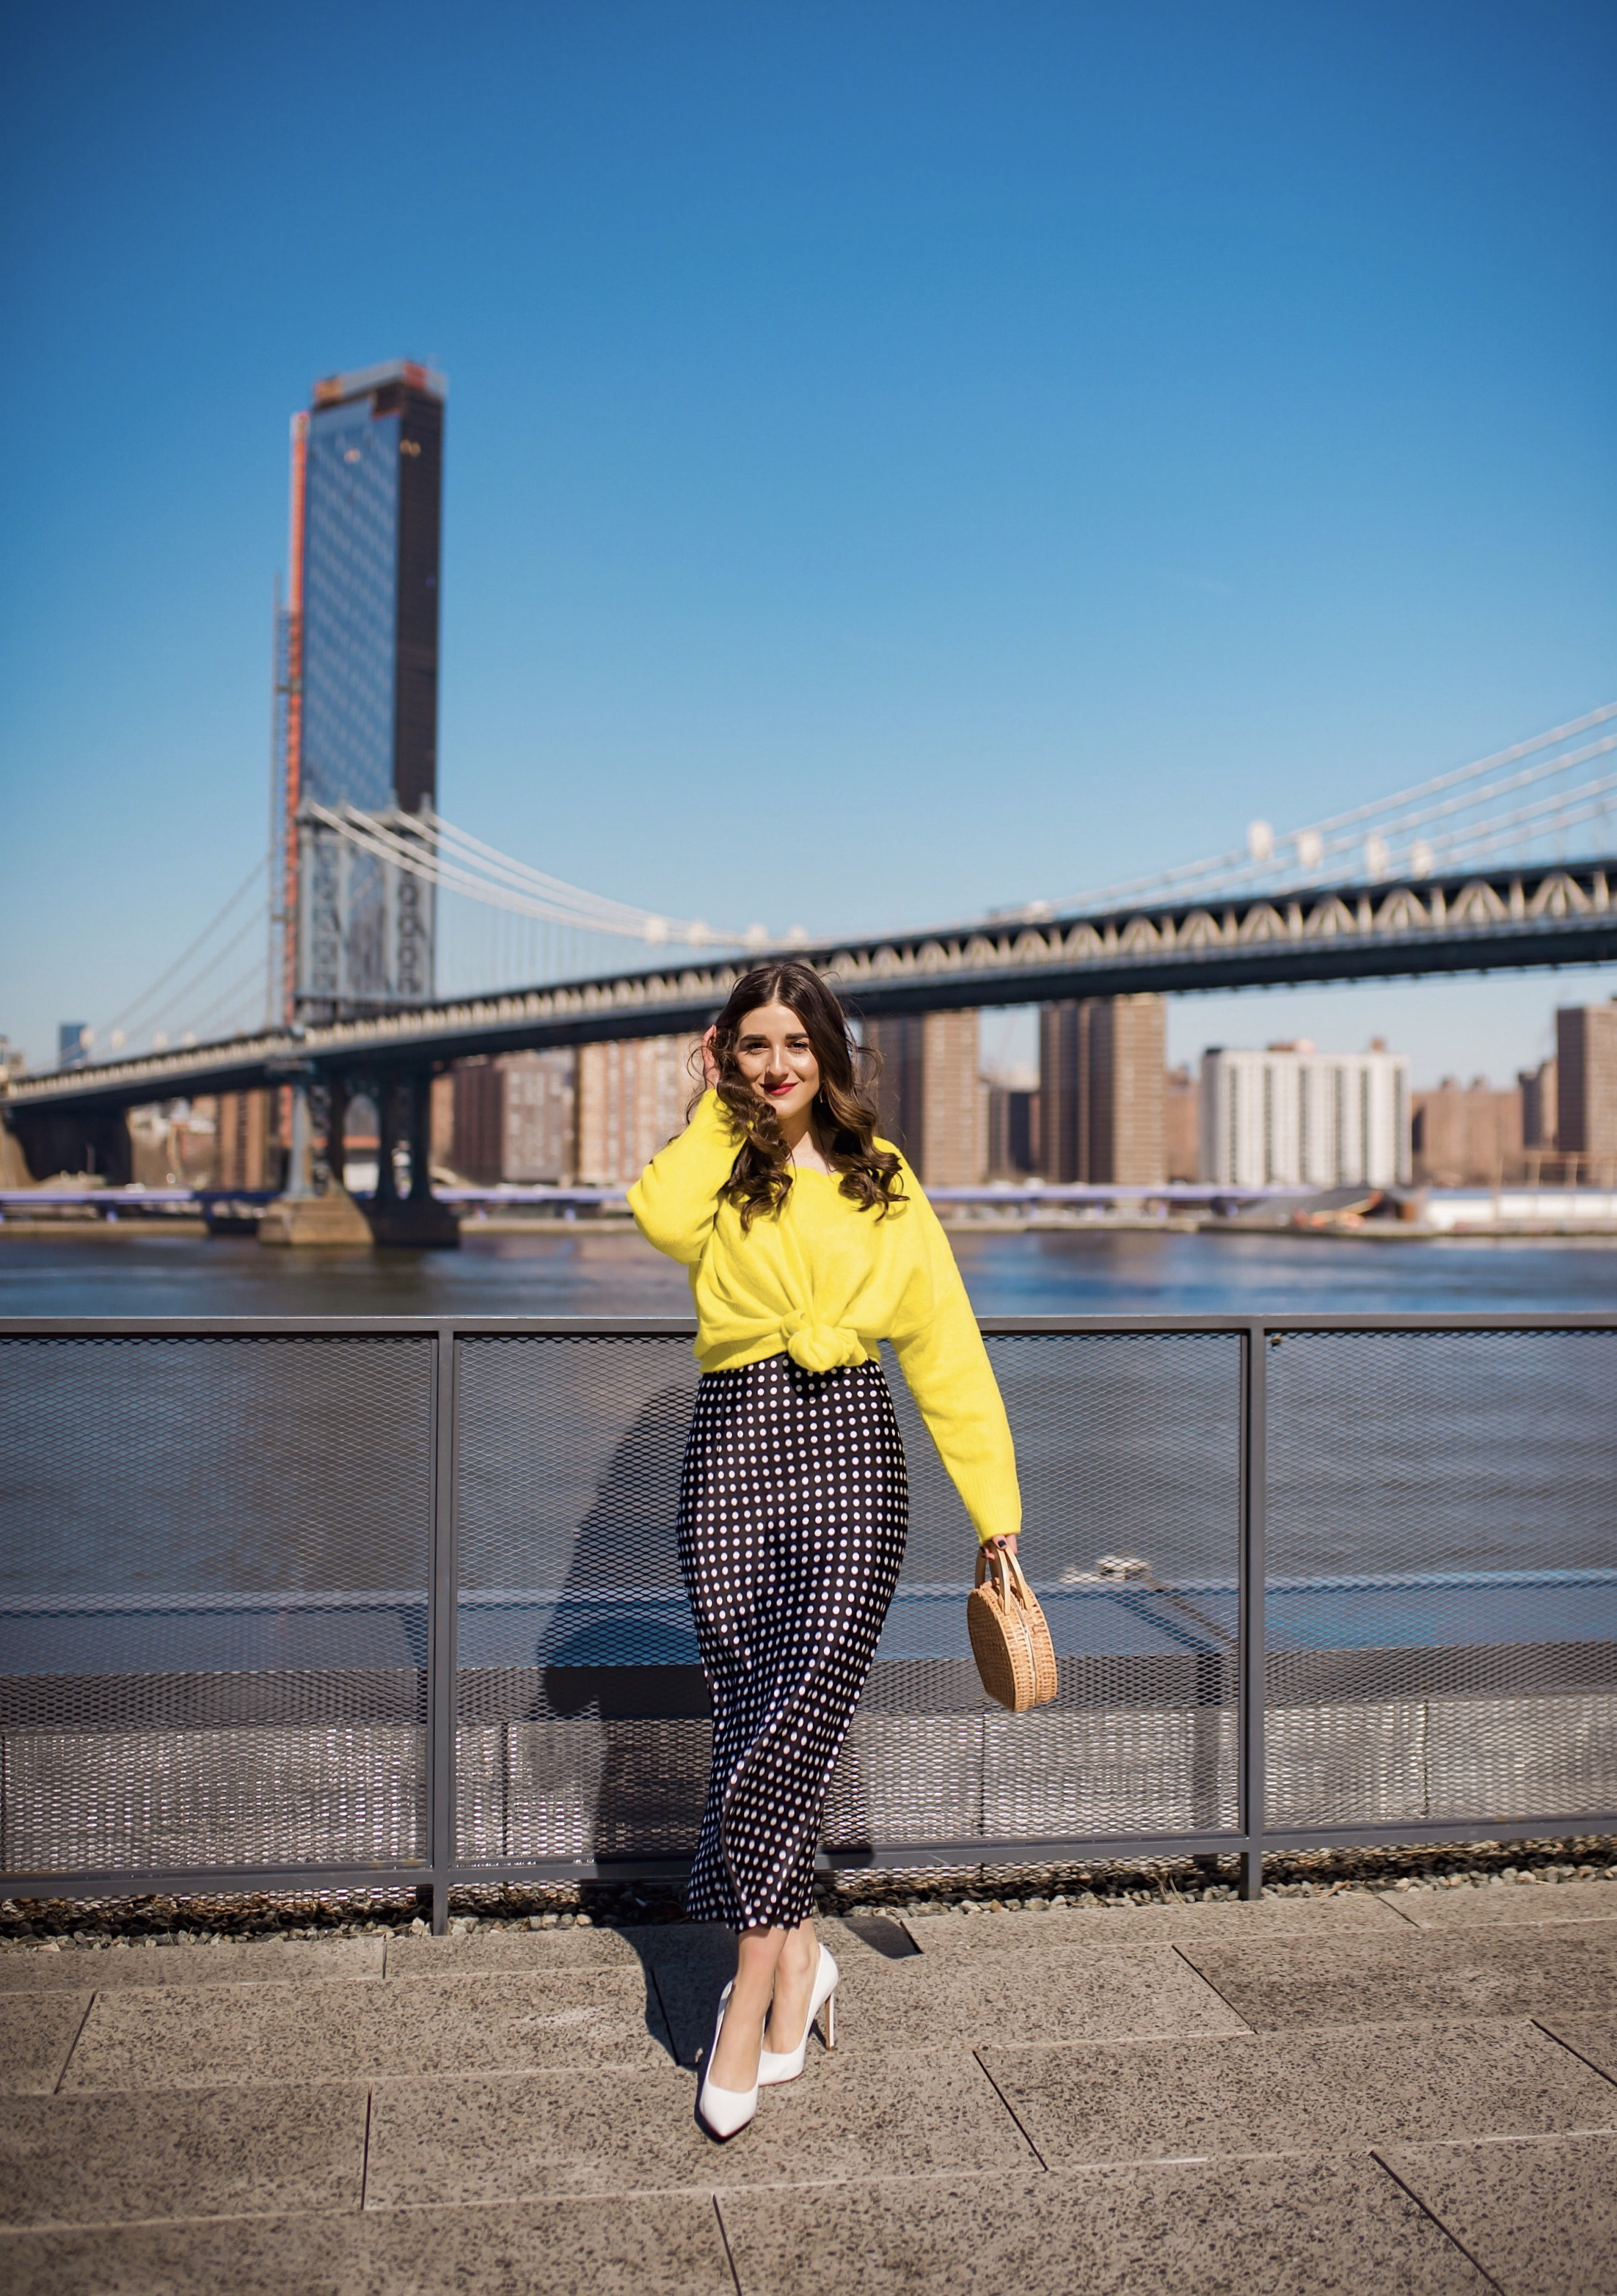 How I Wound Up With Boring White Dishes Navy Polka Dot Dress Neon Yellow Knotted Sweater Esther Santer Fashion Blog NYC Street Style Blogger Outfit OOTD Trendy Shopping Girl What How To Wear White Heels Laurel Creative Photoshoot Dumbo Brooklyn Bridge.JPG